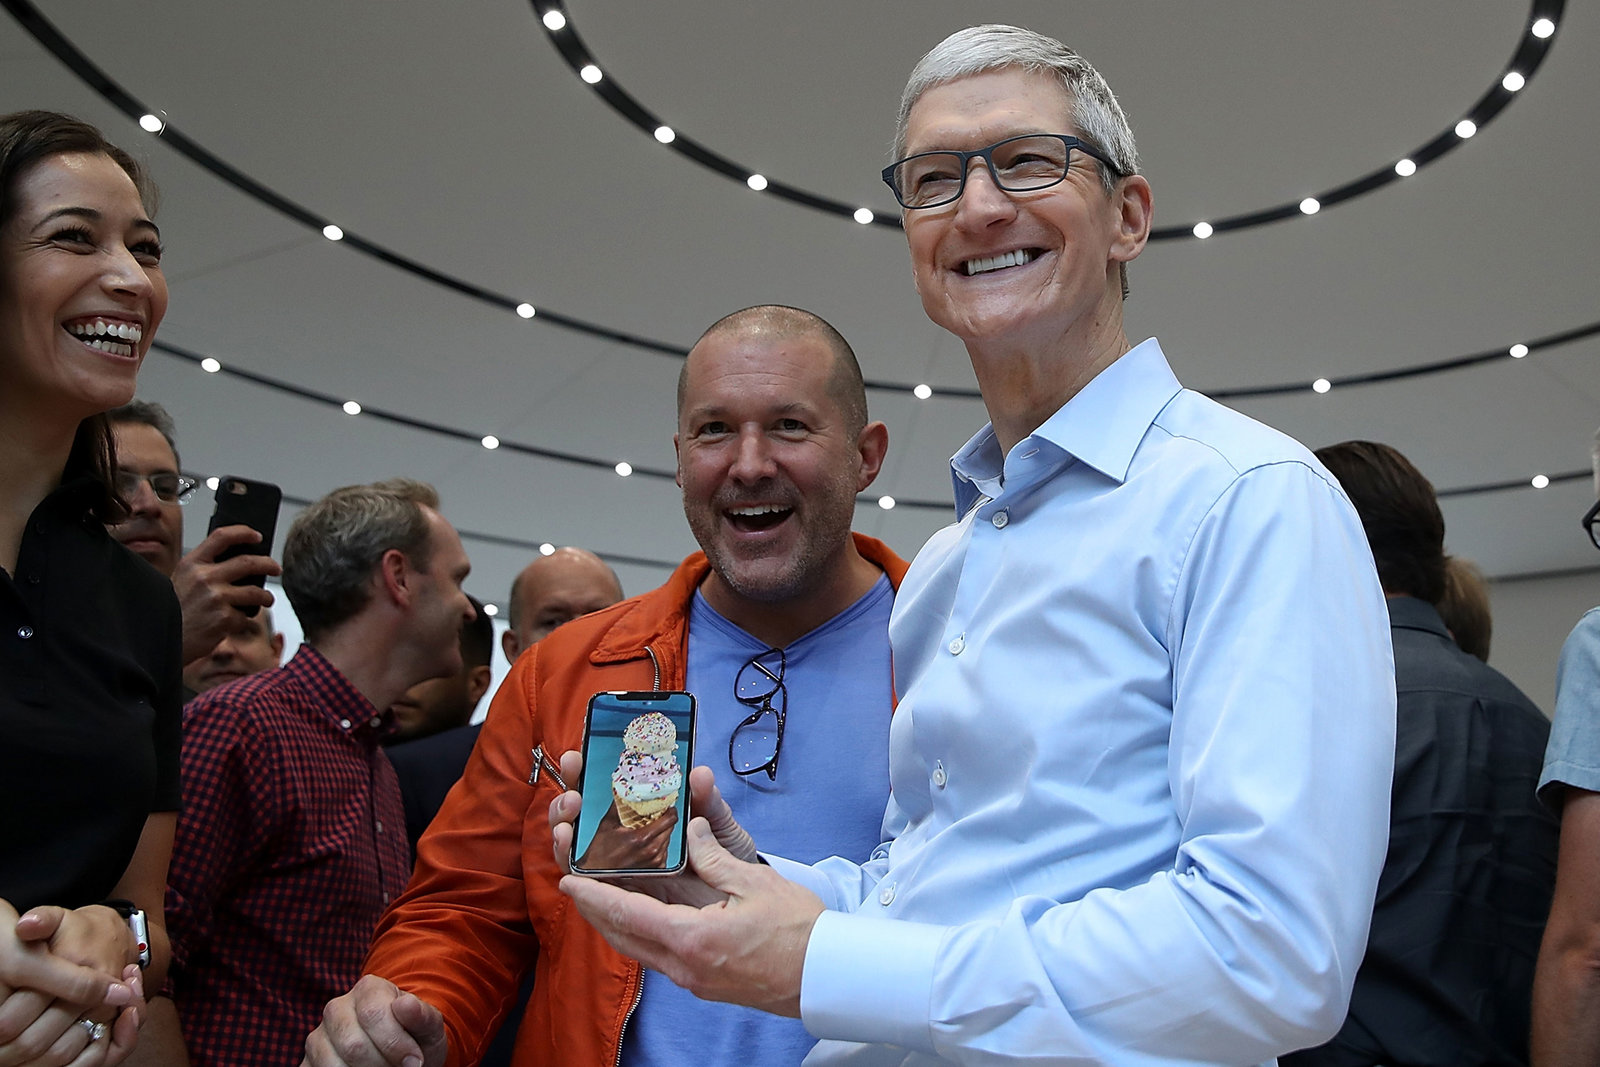 A Bigger iPhone, a New iPad, and the Long-Awaited HomePod: What to Expect From Apple in 2018